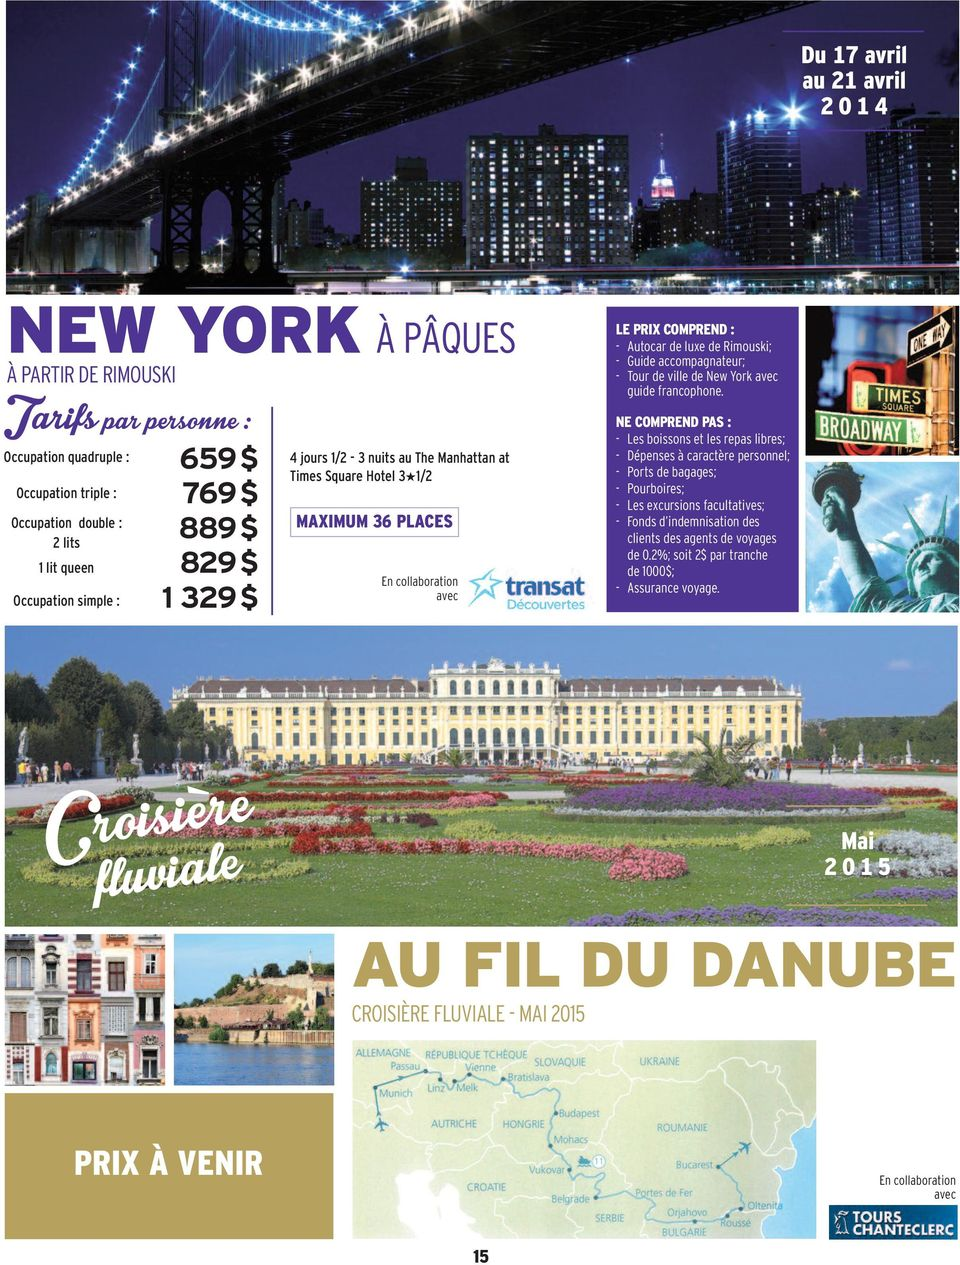 de ville de New York guide francophone.